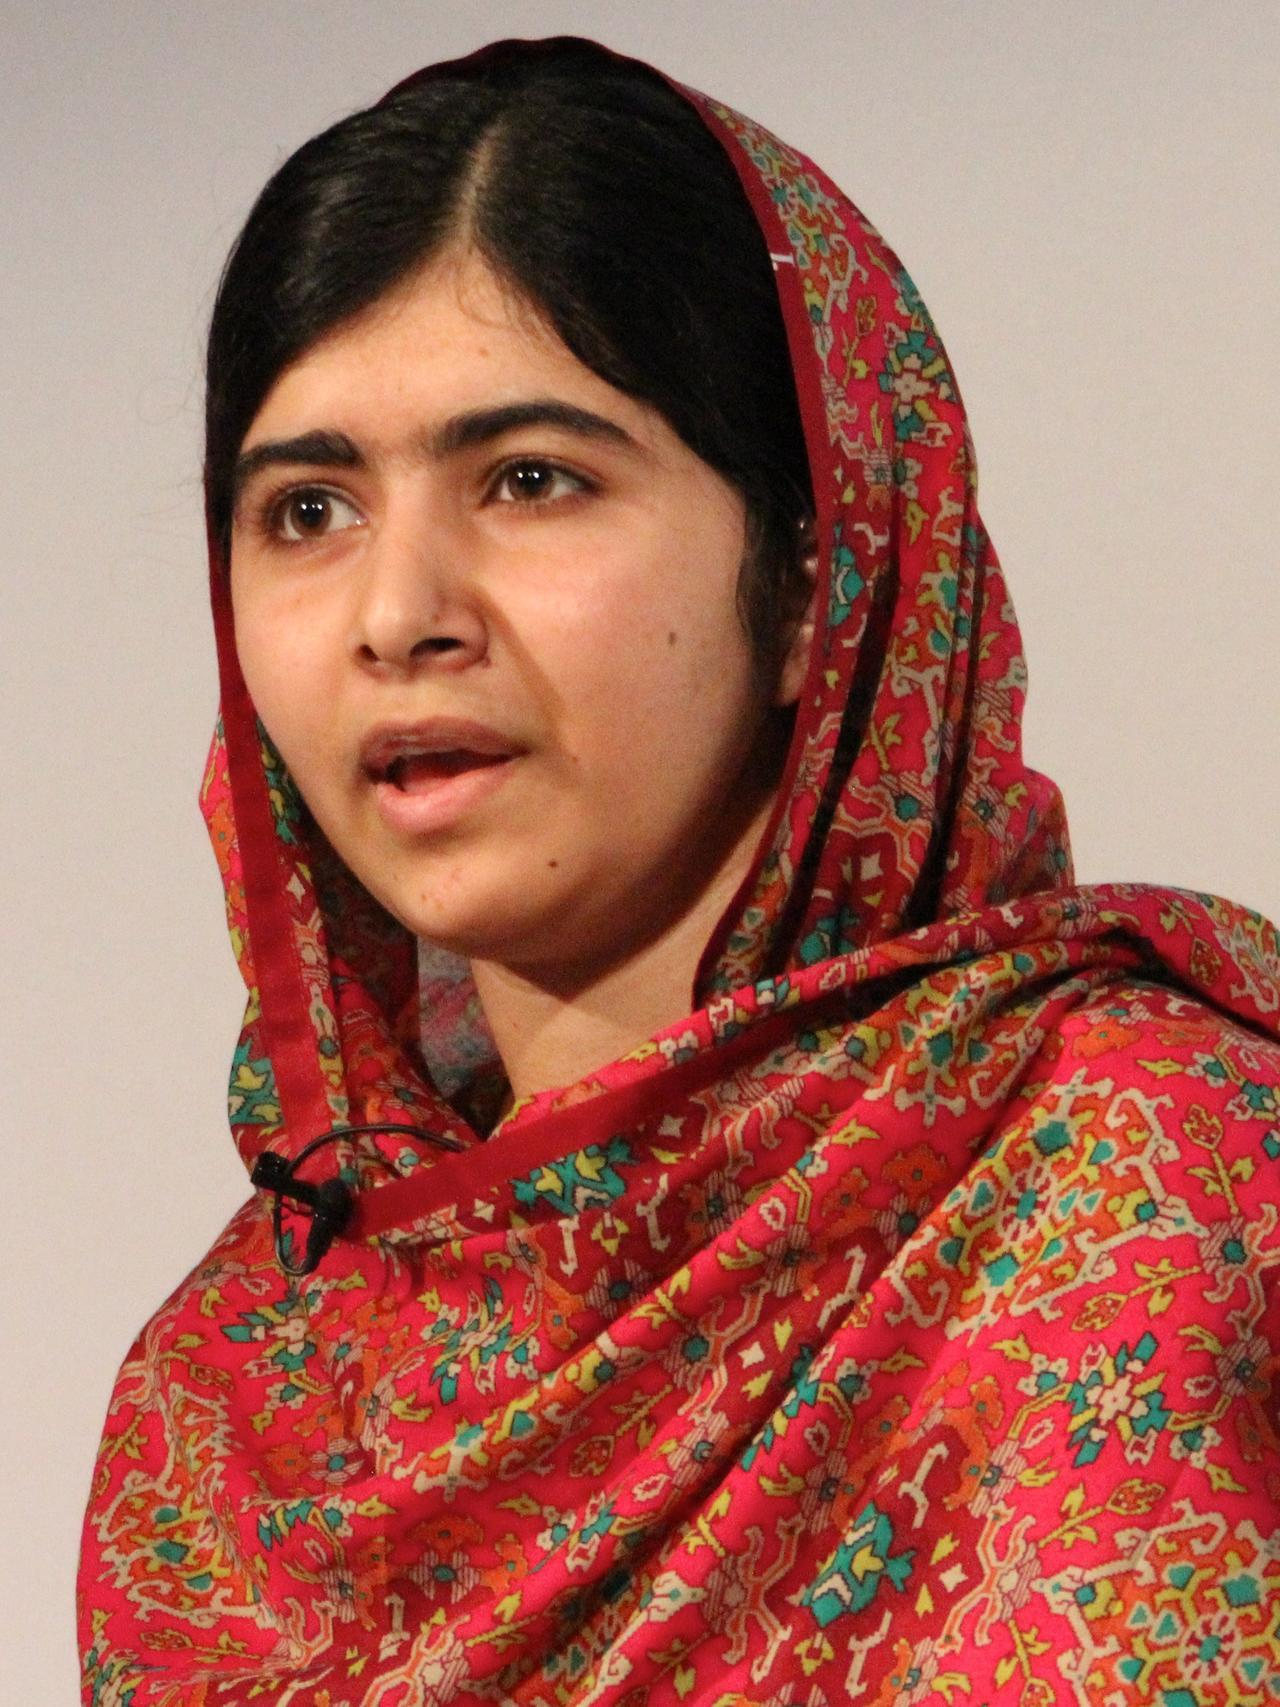 malala_yousafzai_at_girl_summit_2014.jpg